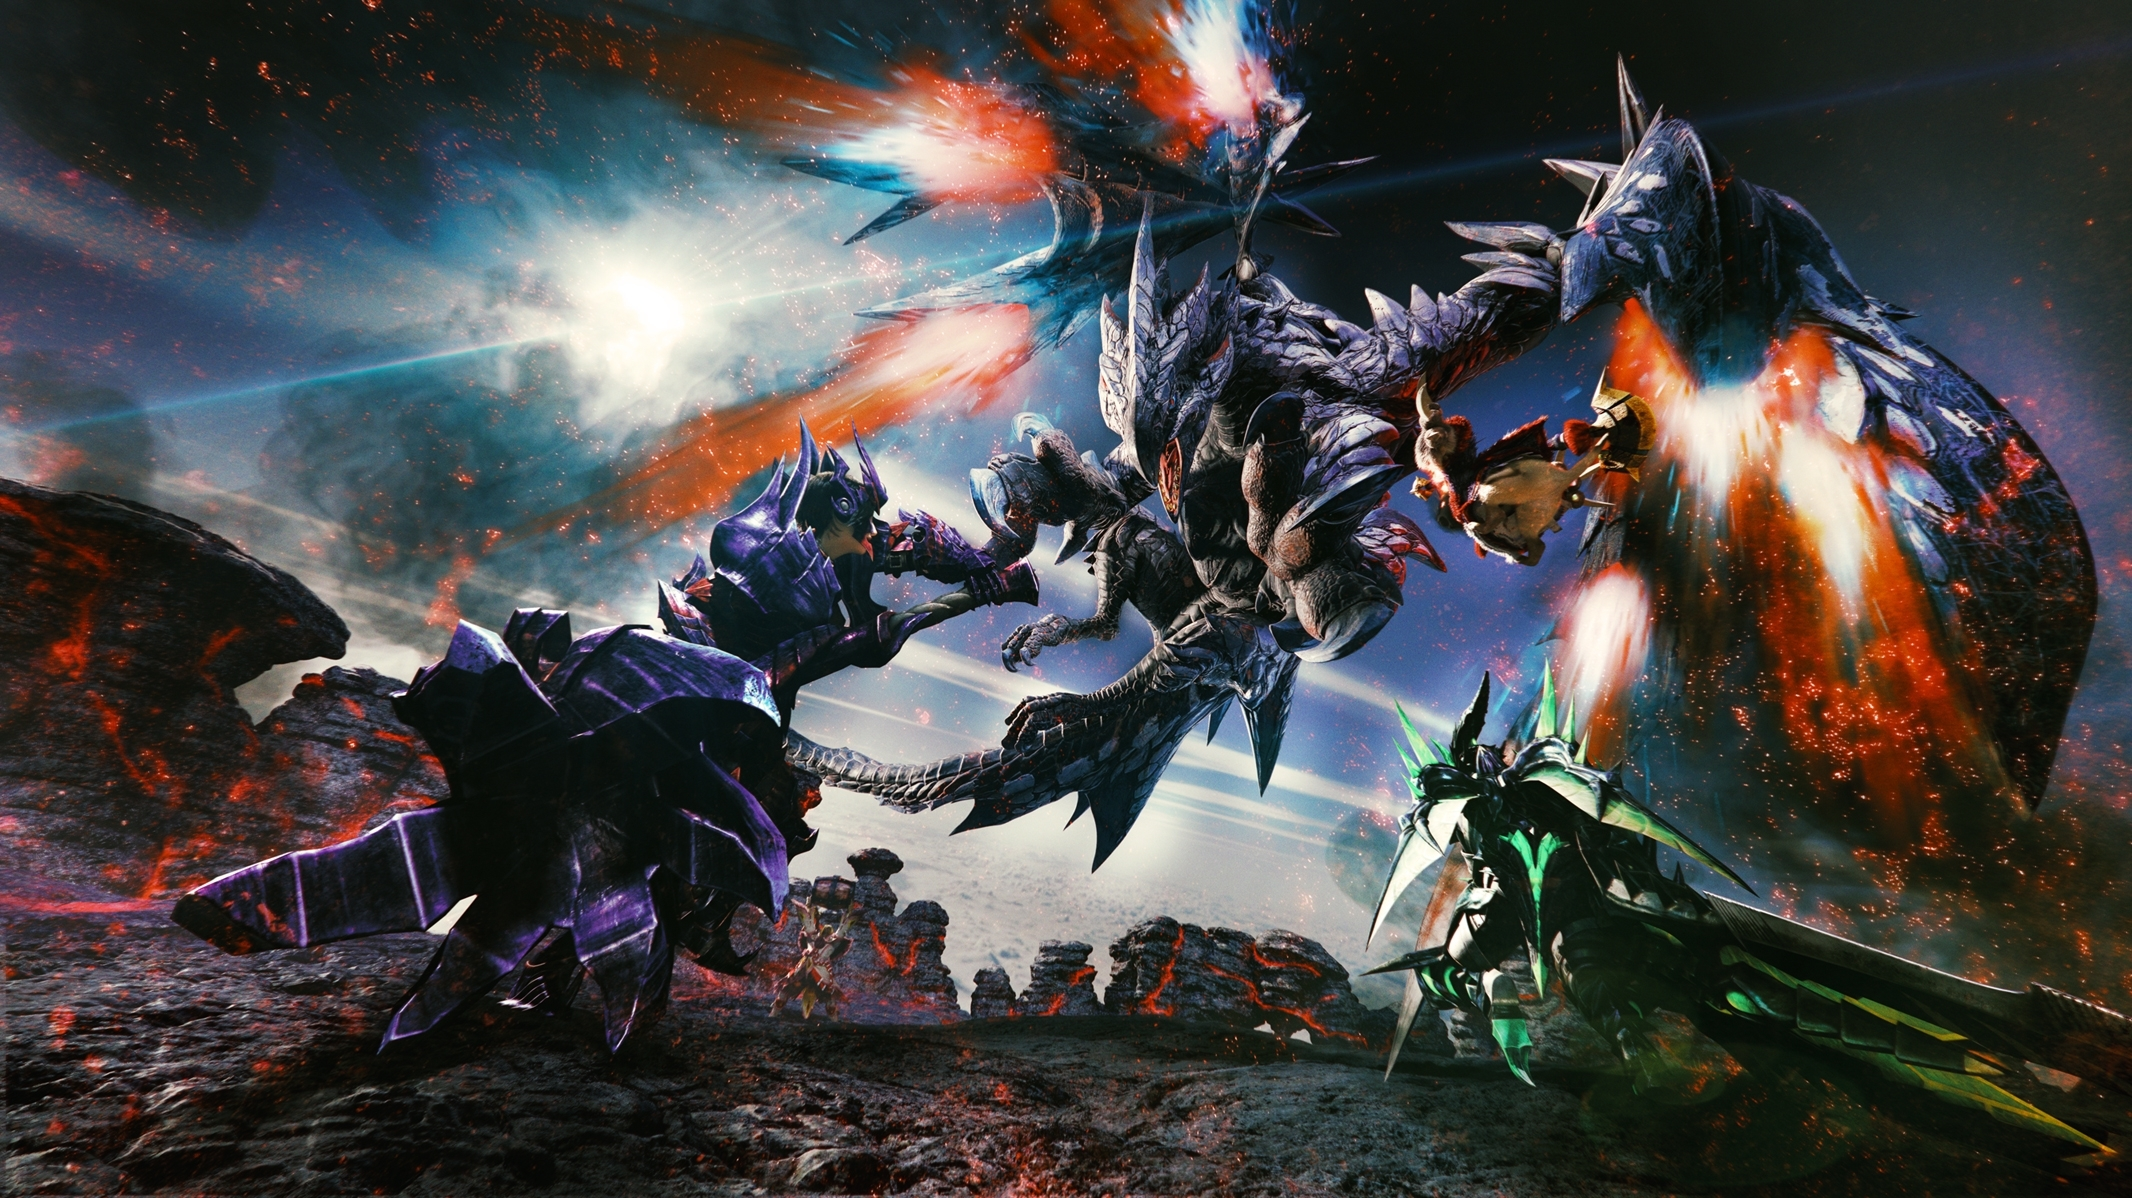 monster hunter double cross - cg-art wallpaper (2132 x 1198) - imgur